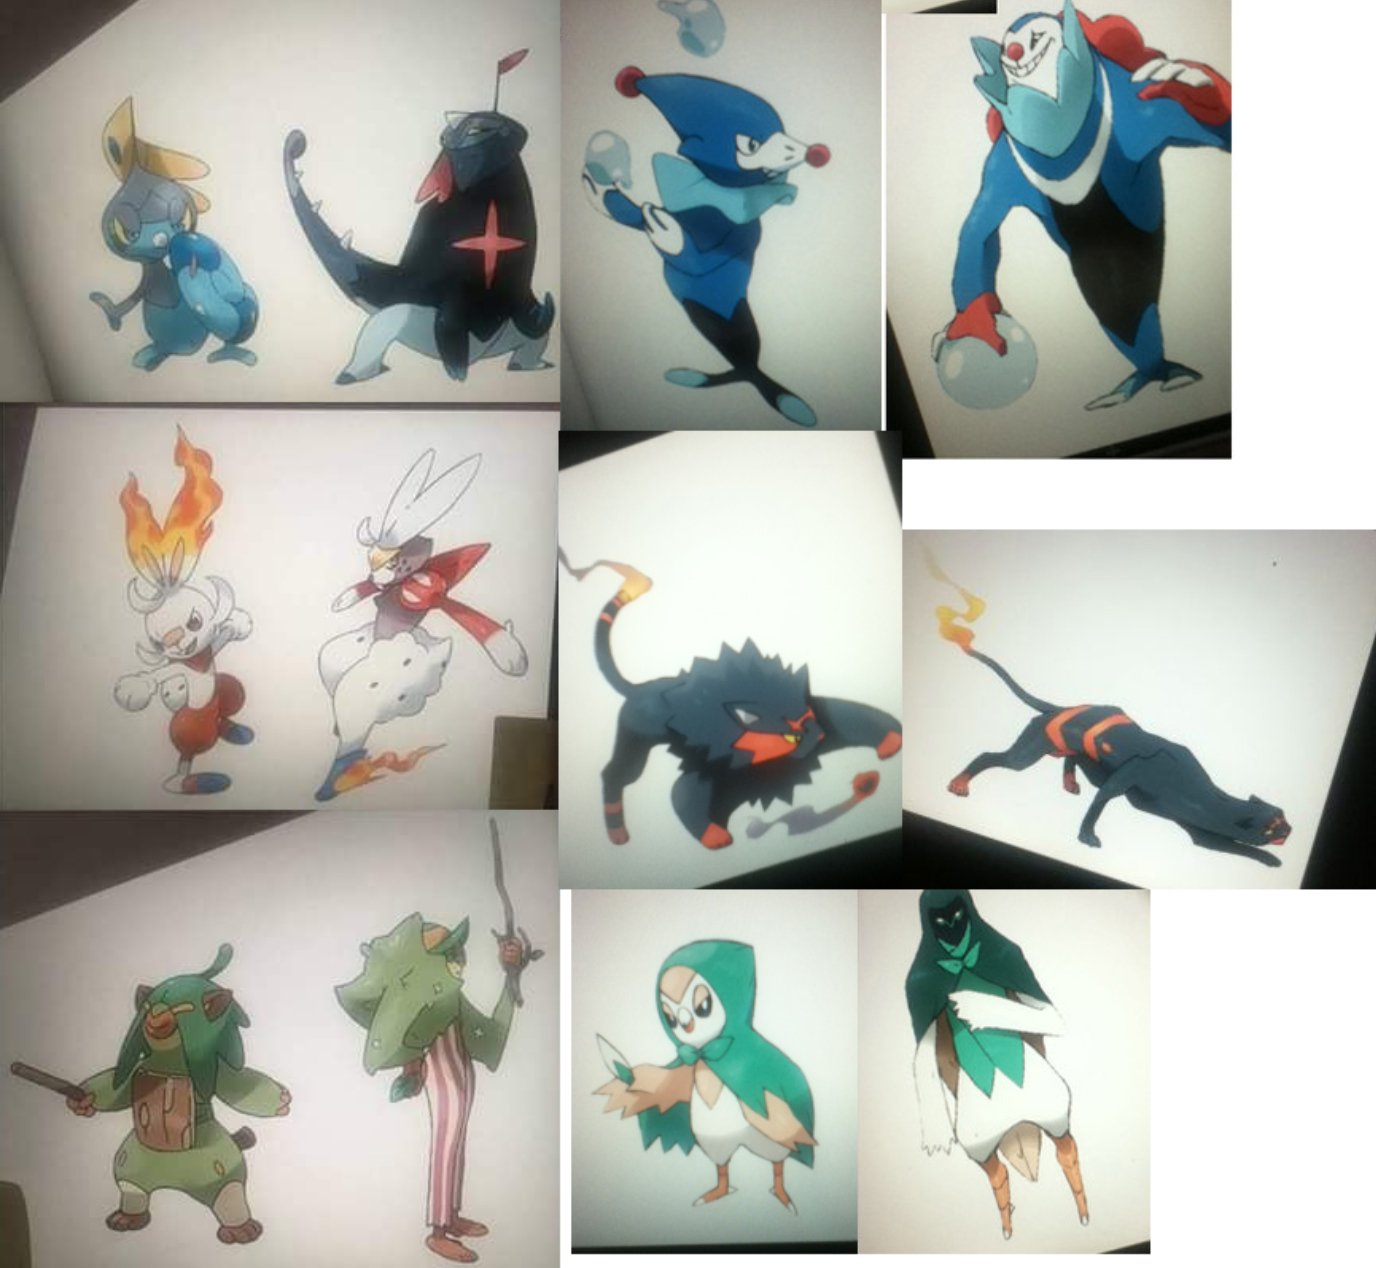 Those Leaked Pokemon Sword And Shield Starter Evolutions Are Likely Fake